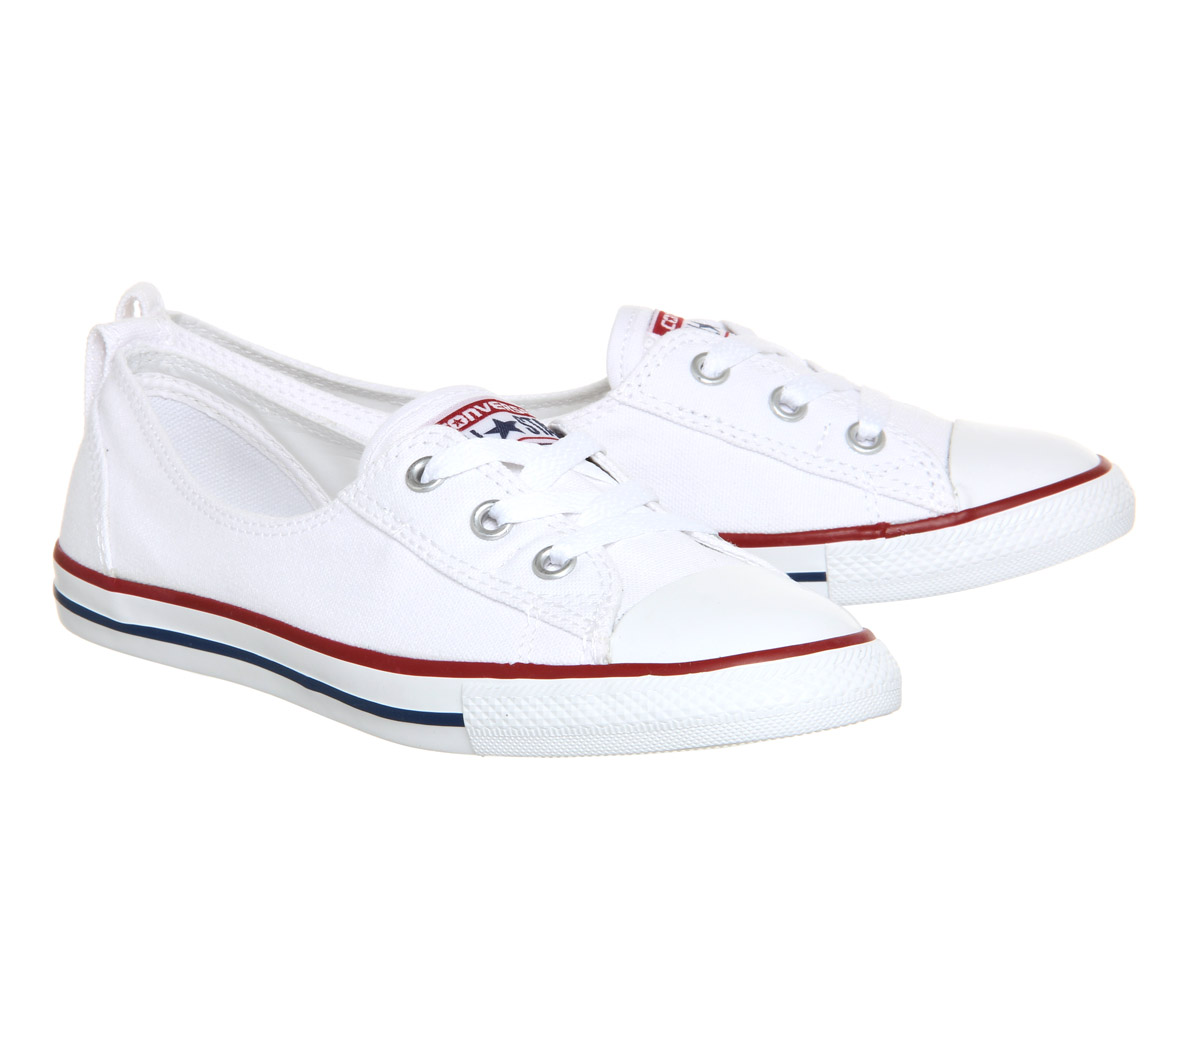 Damenschuhe Damenschuhe Damenschuhe Converse Ctas Ballet Lace Optical Weiß Trainers Schuhes 670ab3